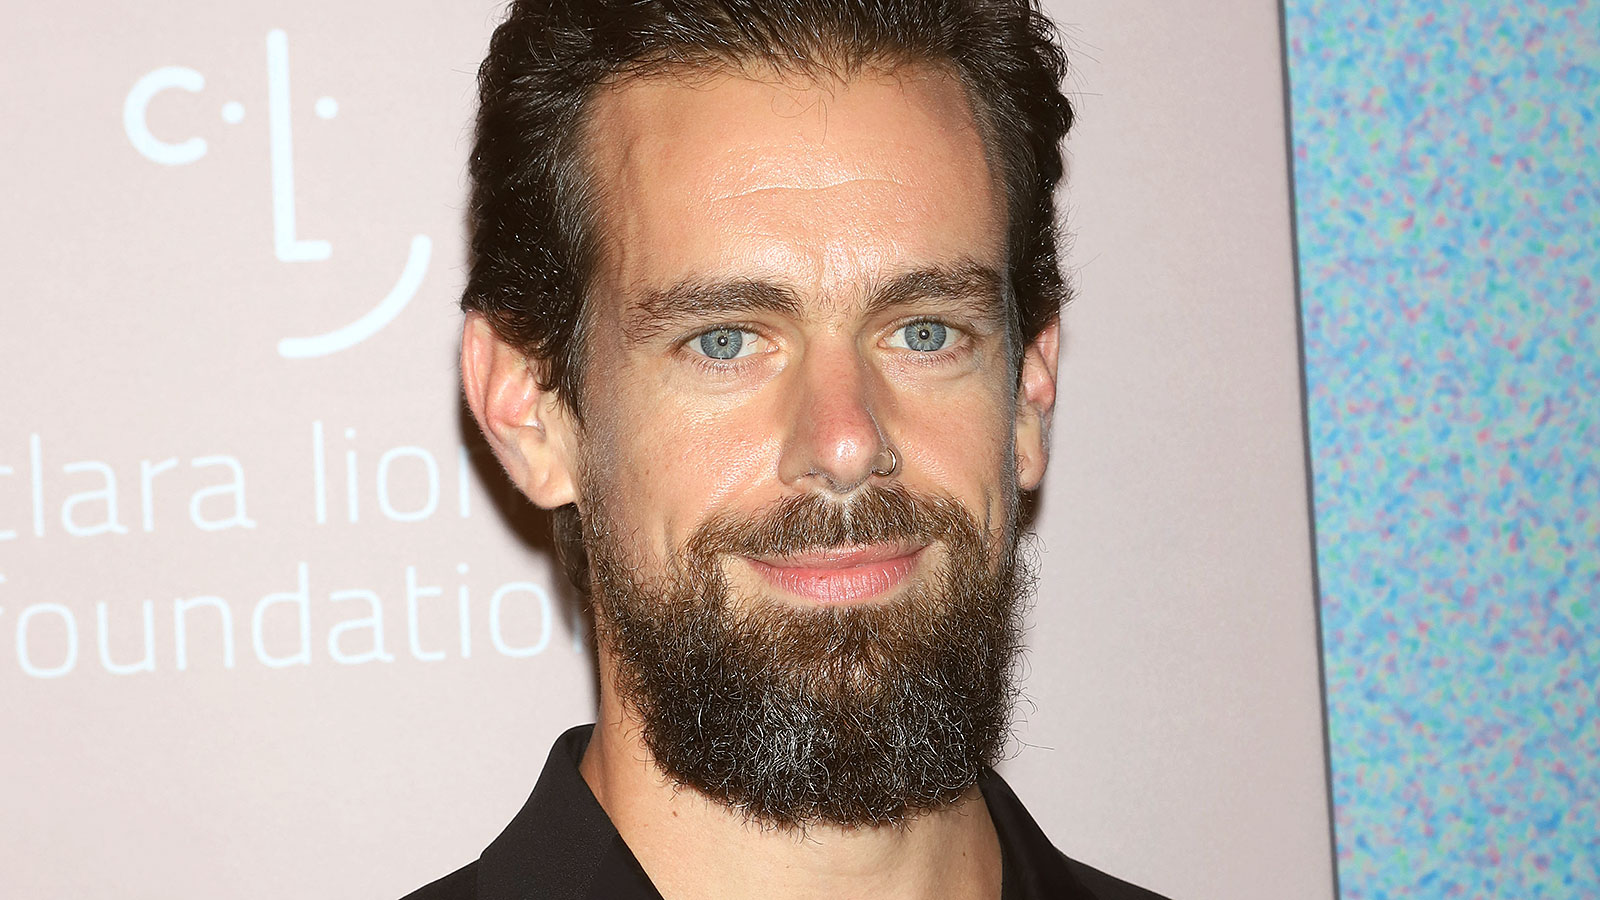 Twitter CEO's extreme diet is just another example of how we link food to achievement